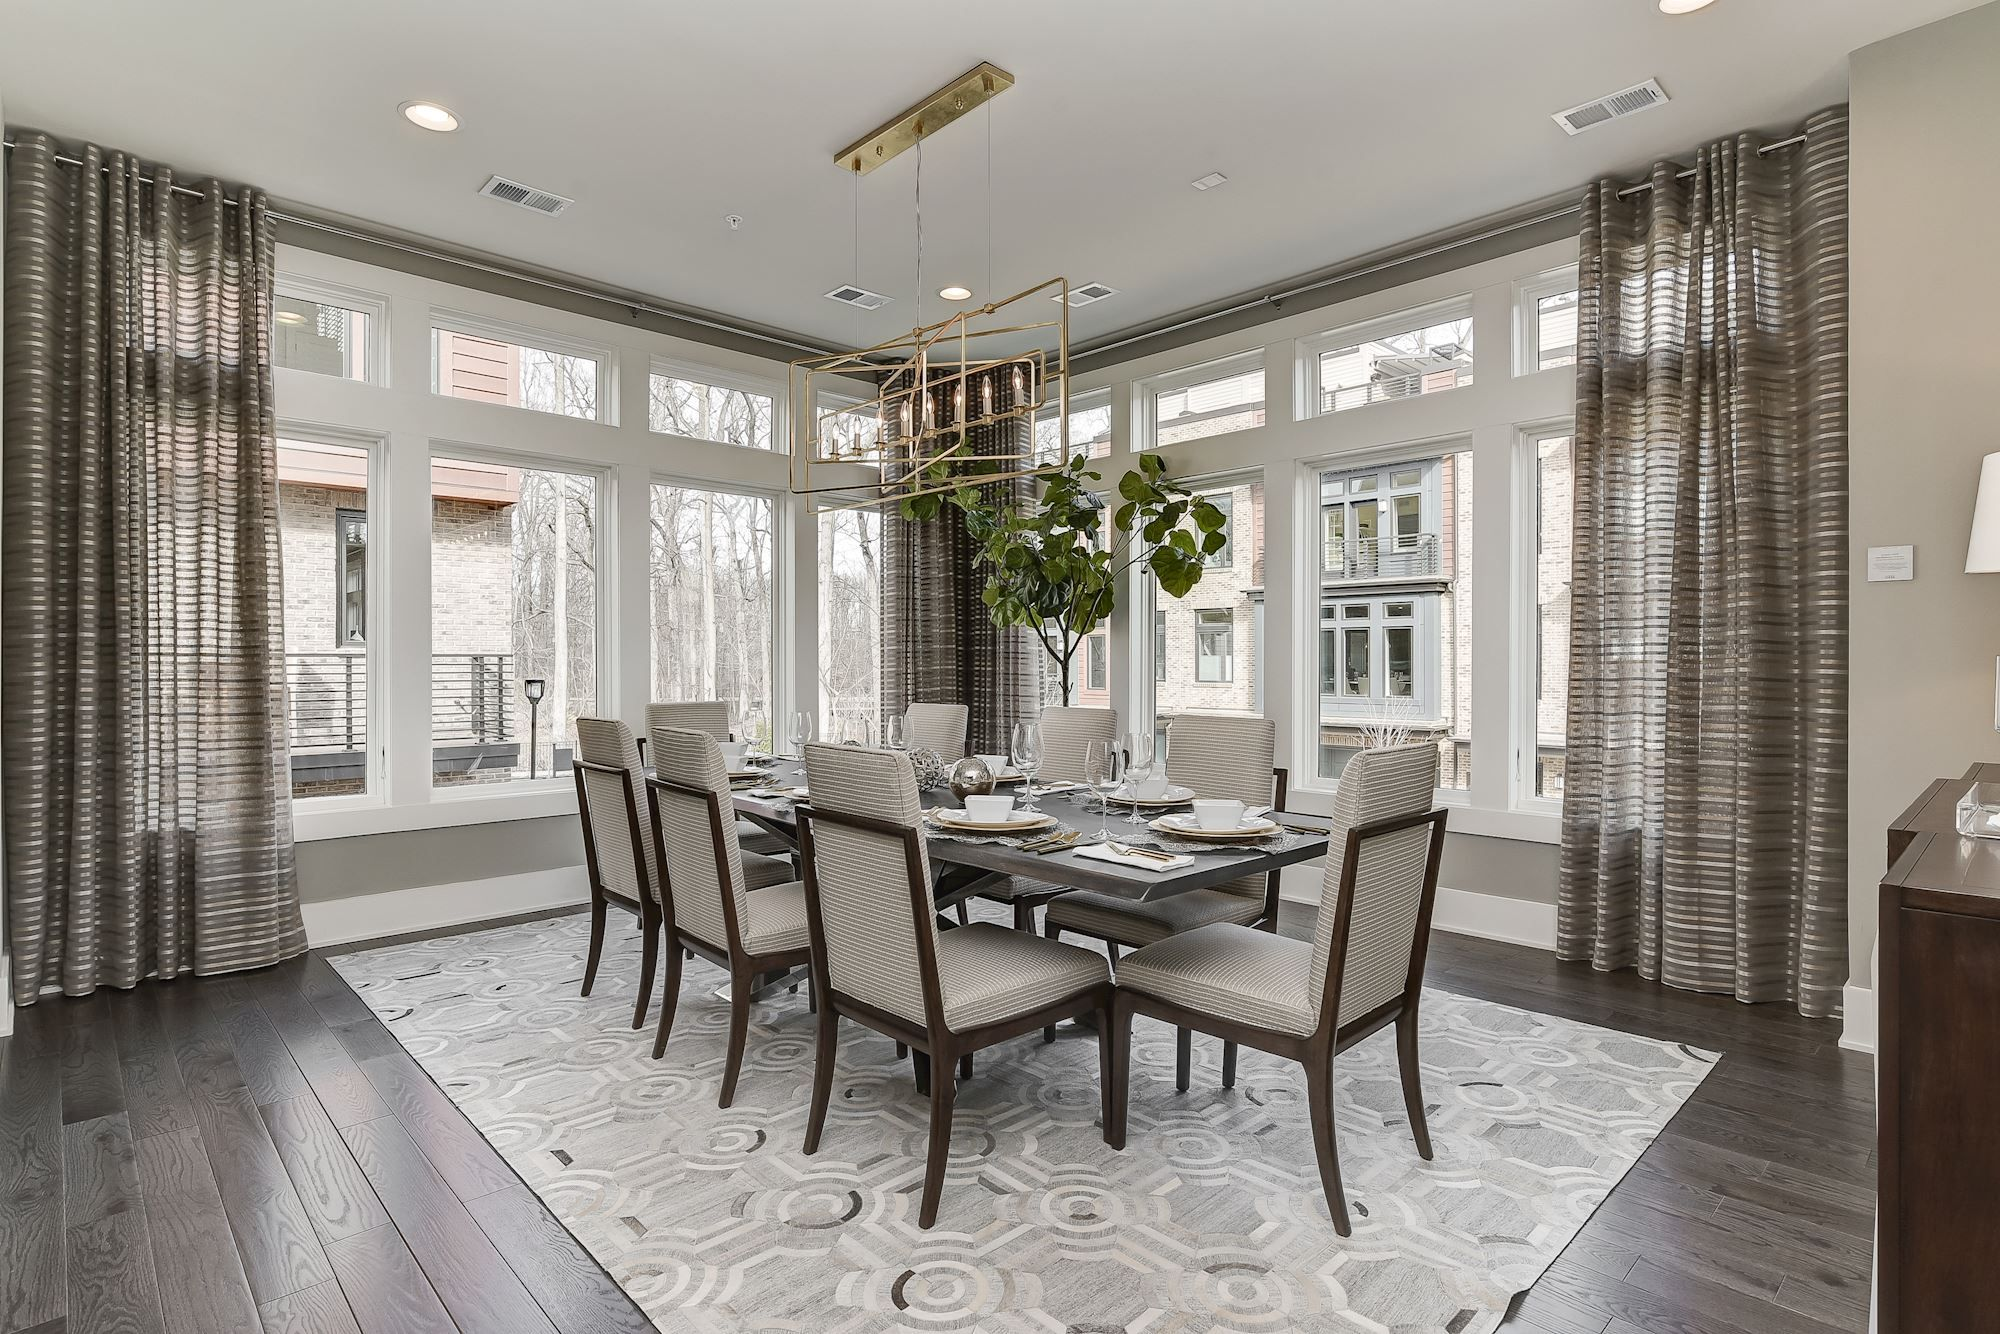 Modern Dining Room With Mixture Of Gray And Earth Tones Sleek Gold Light Fixture